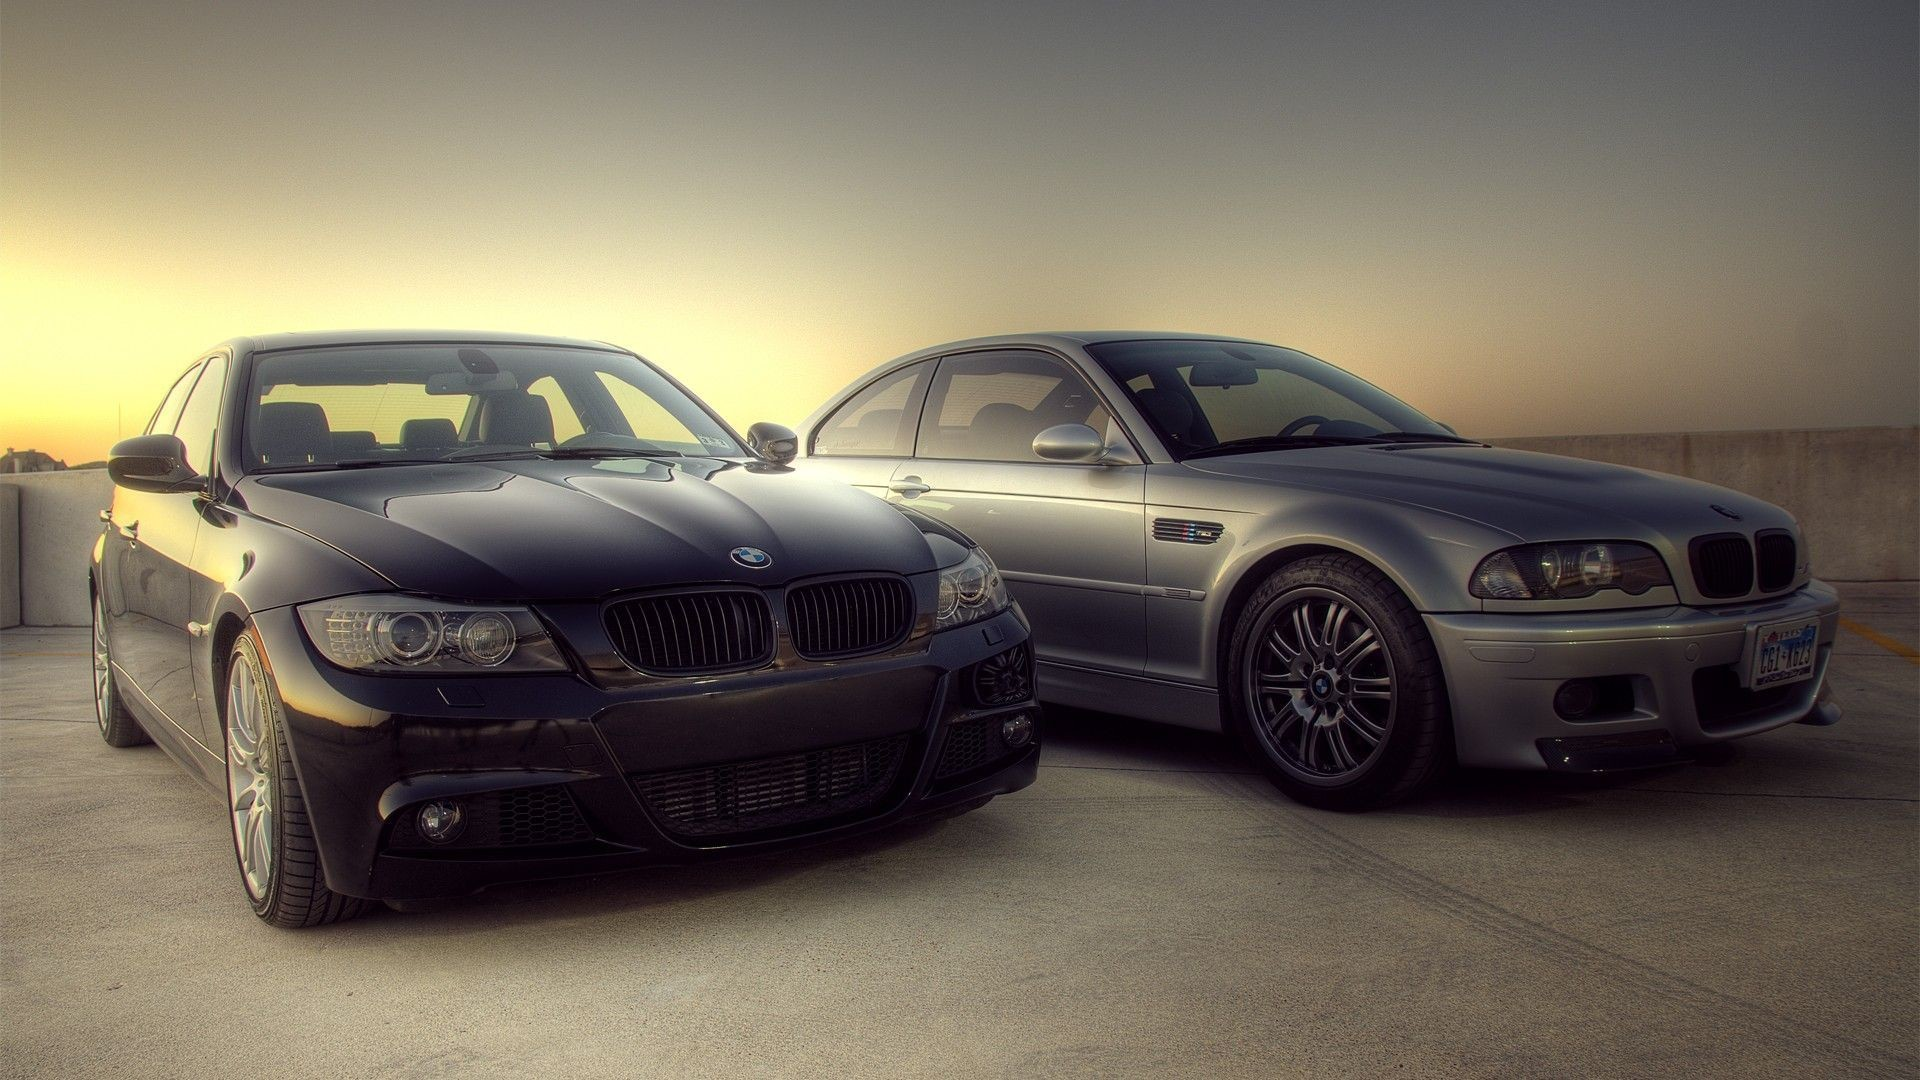 1920x1080 bmw e46 wallpaper hd #698288